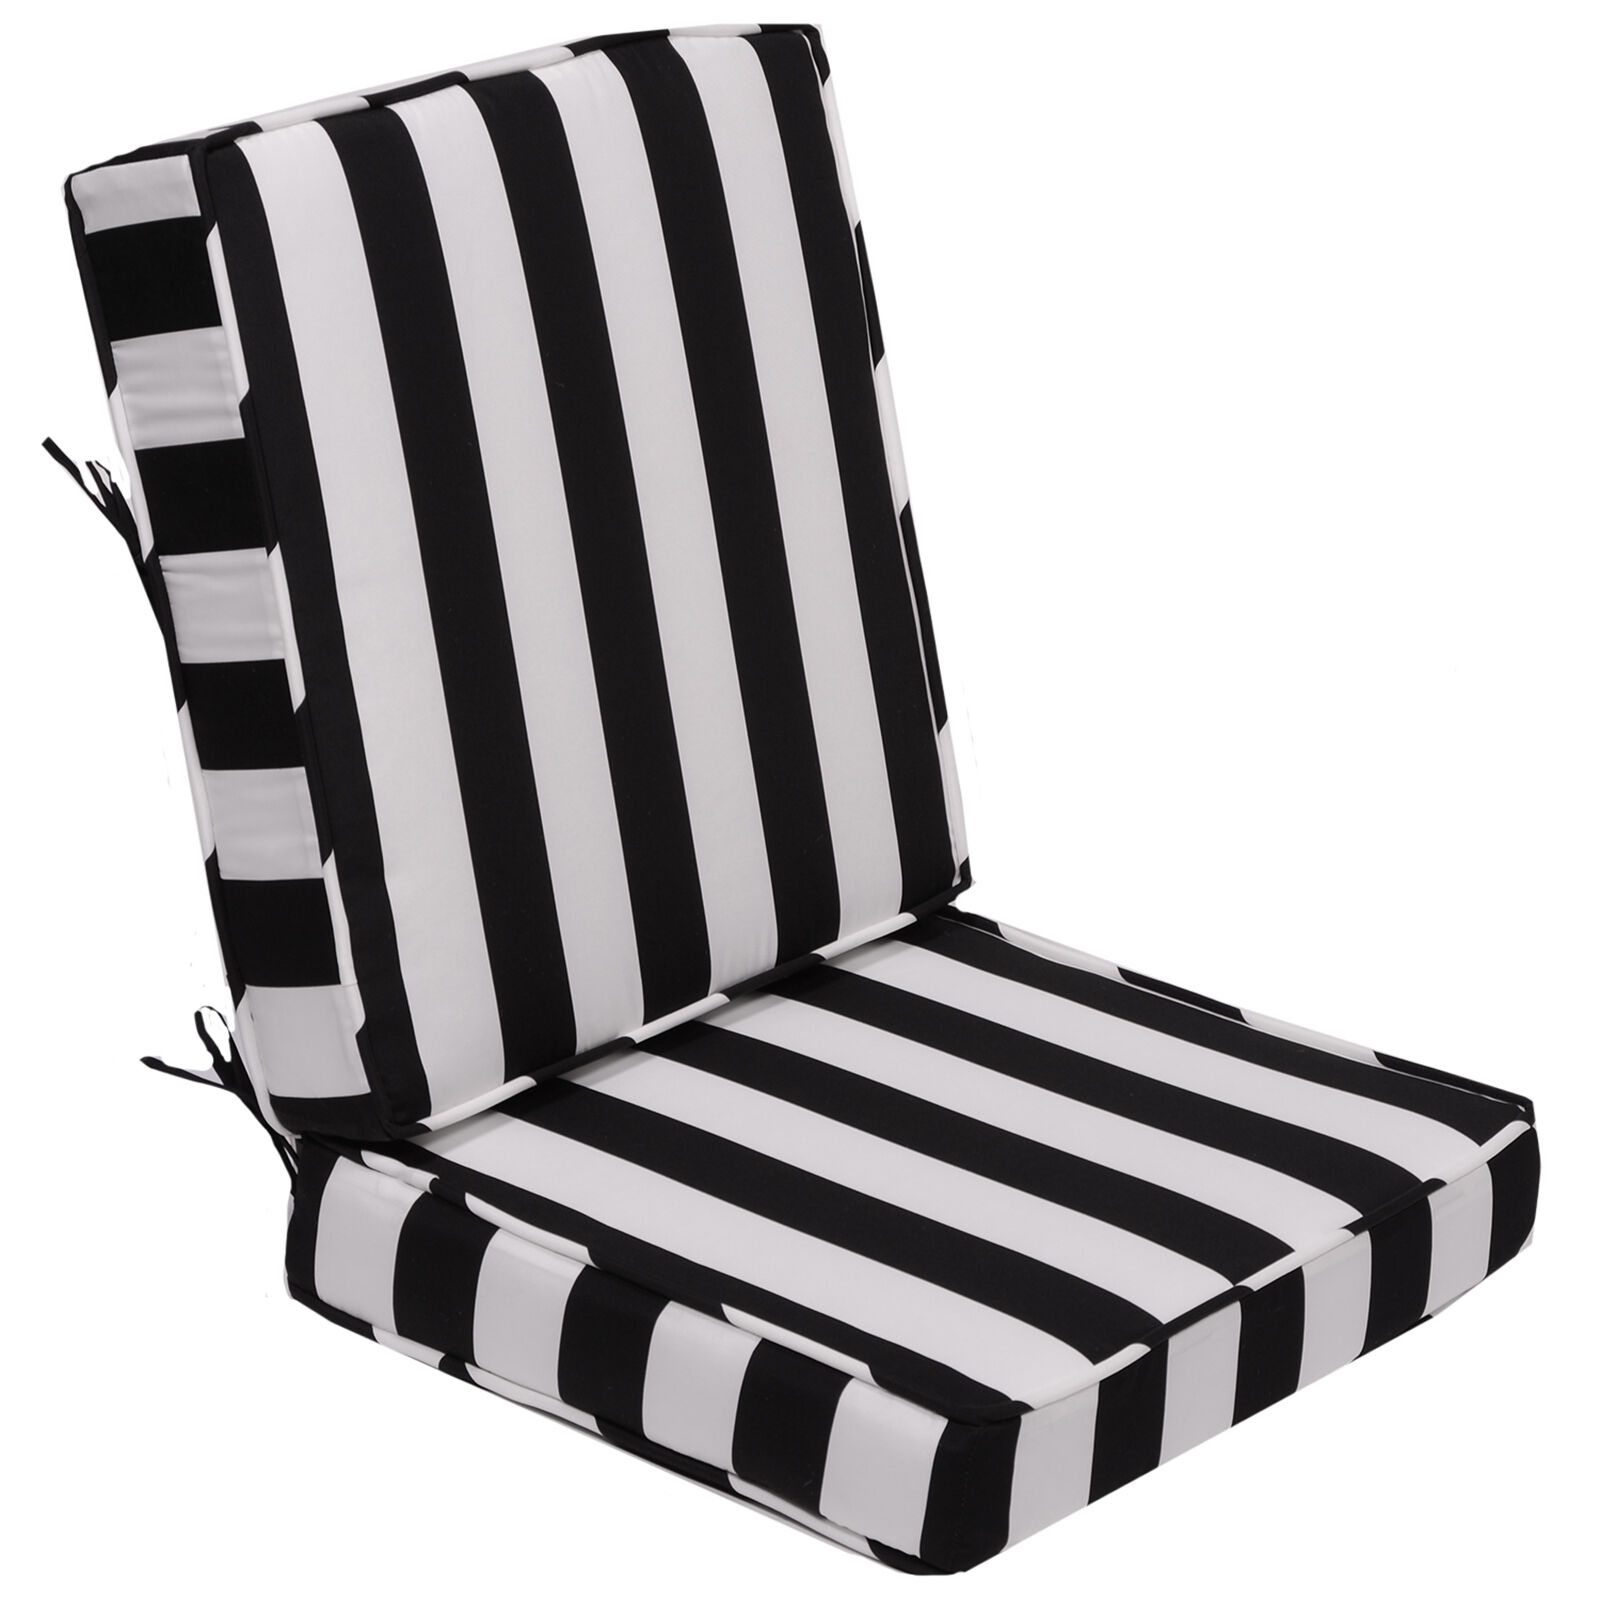 black and white striped chair cushions for patio chair Black And White Striped Outdoor Seat Cushions id=94930